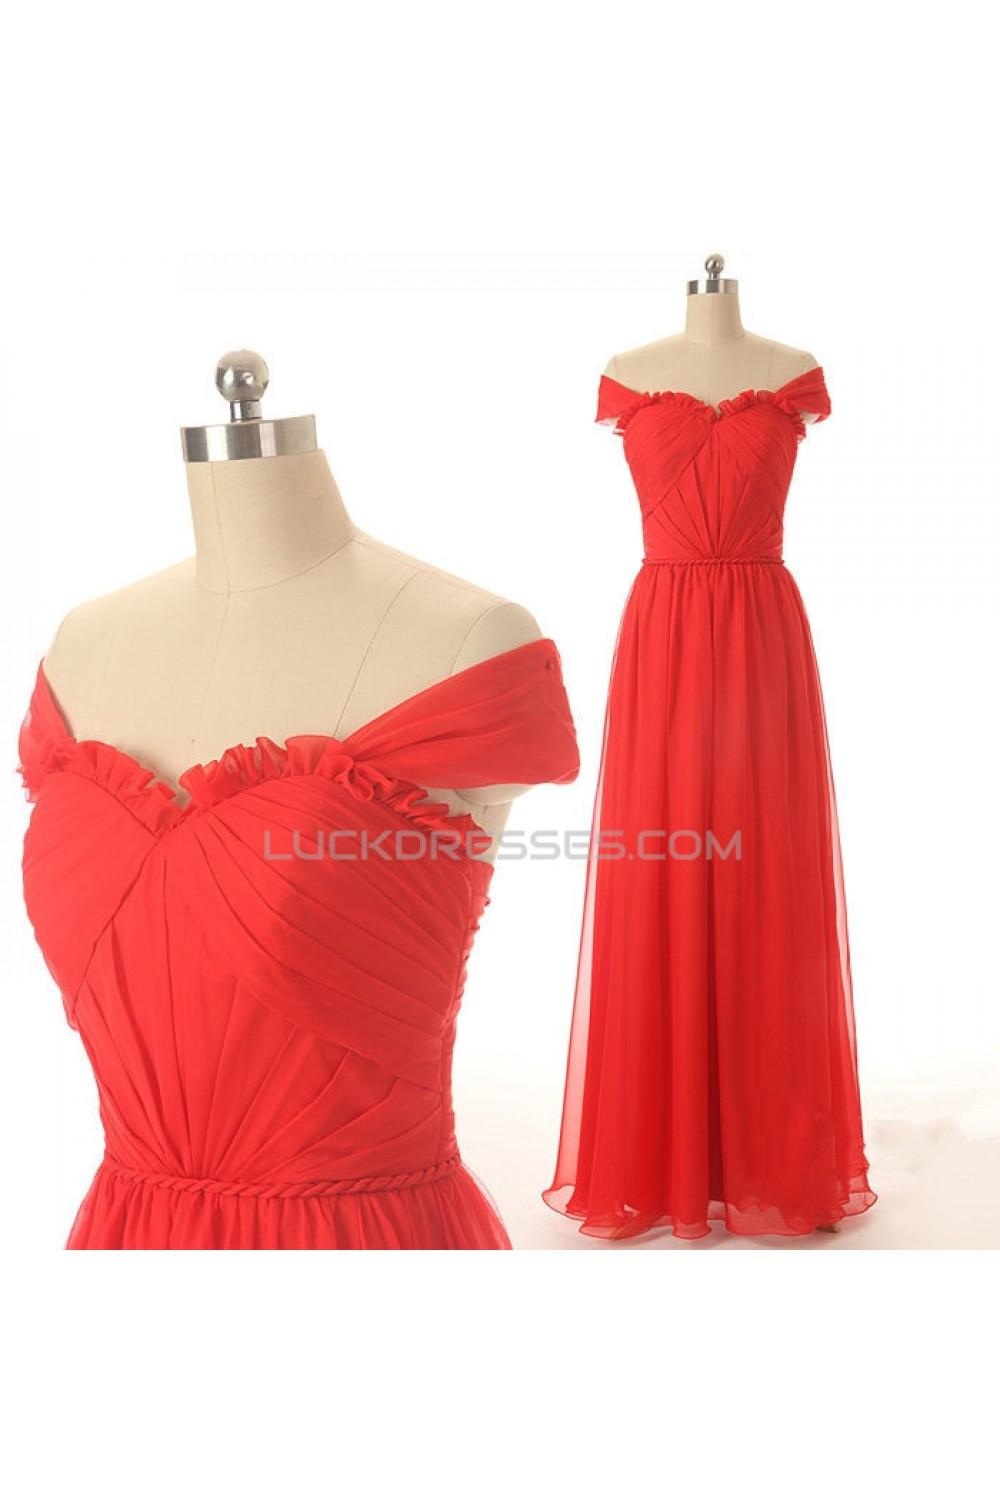 9fc761f94b8 A-Line Off-the-Shoulder Long Red Chiffon Prom Evening Formal Dresses  ED011579